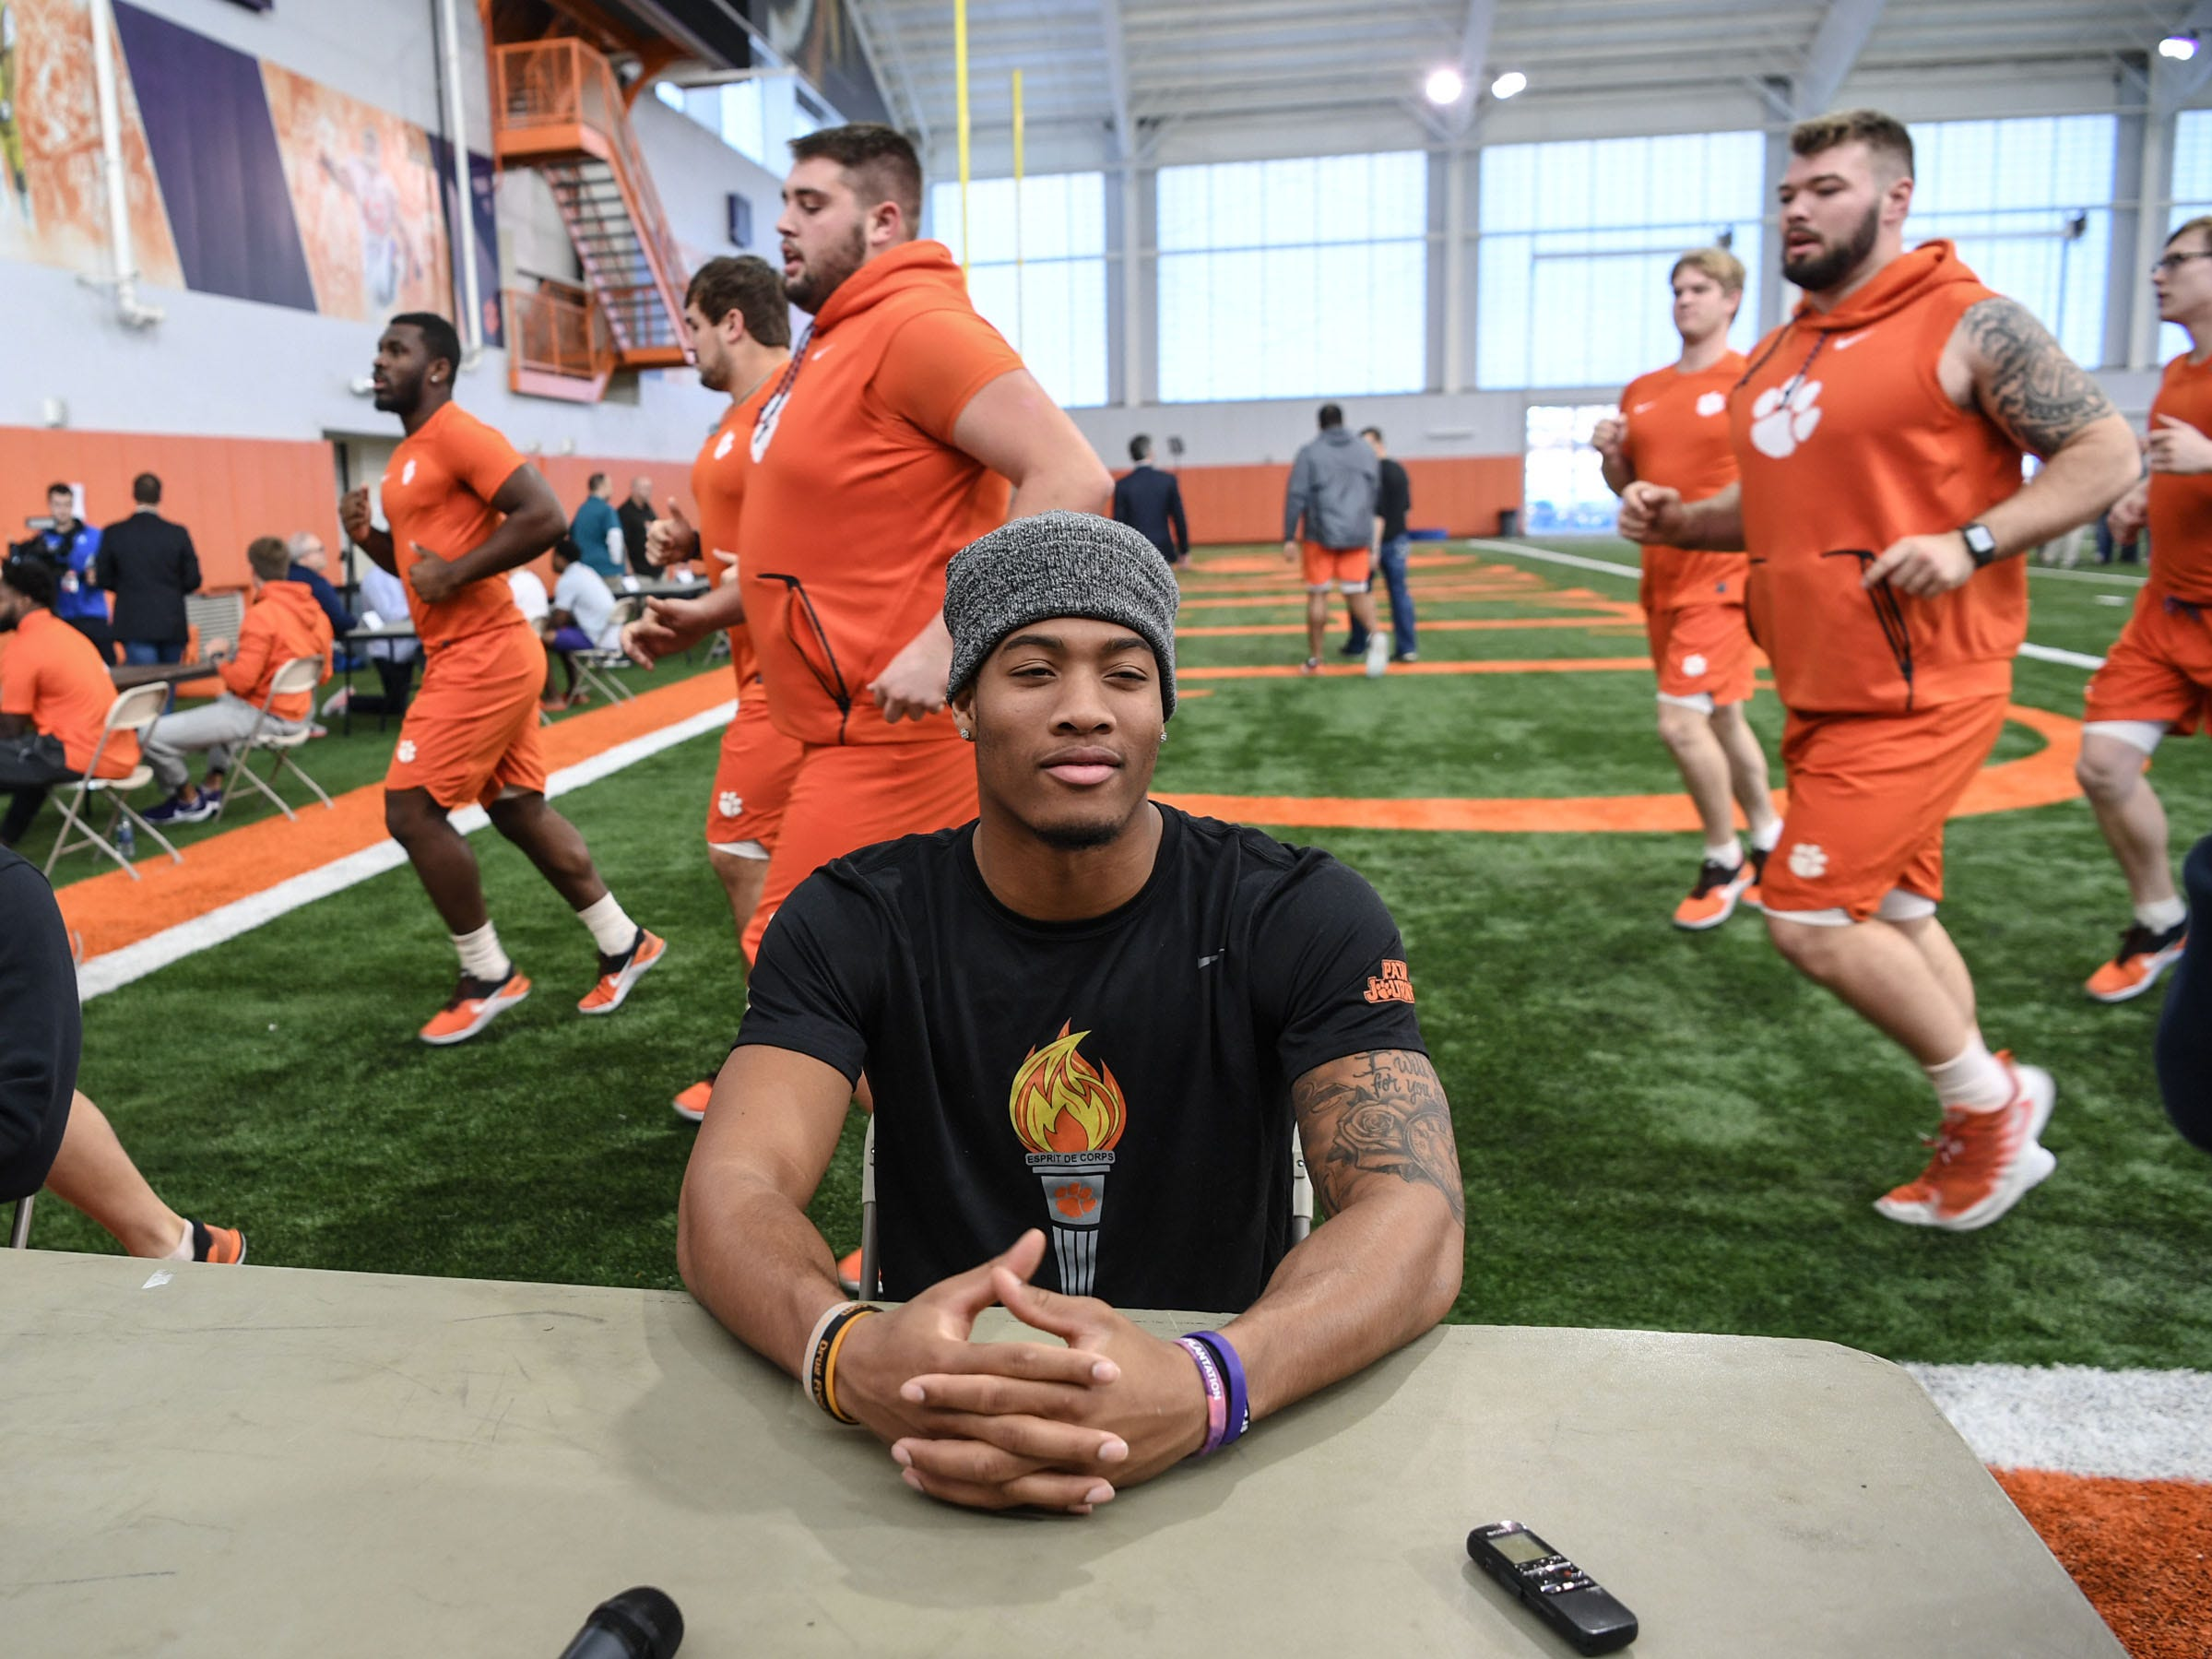 Clemson safety Isaiah Simmons waits to be interviewed while players jog by him, during Media Day at the Poe Indoor Facility in Clemson on Tuesday.